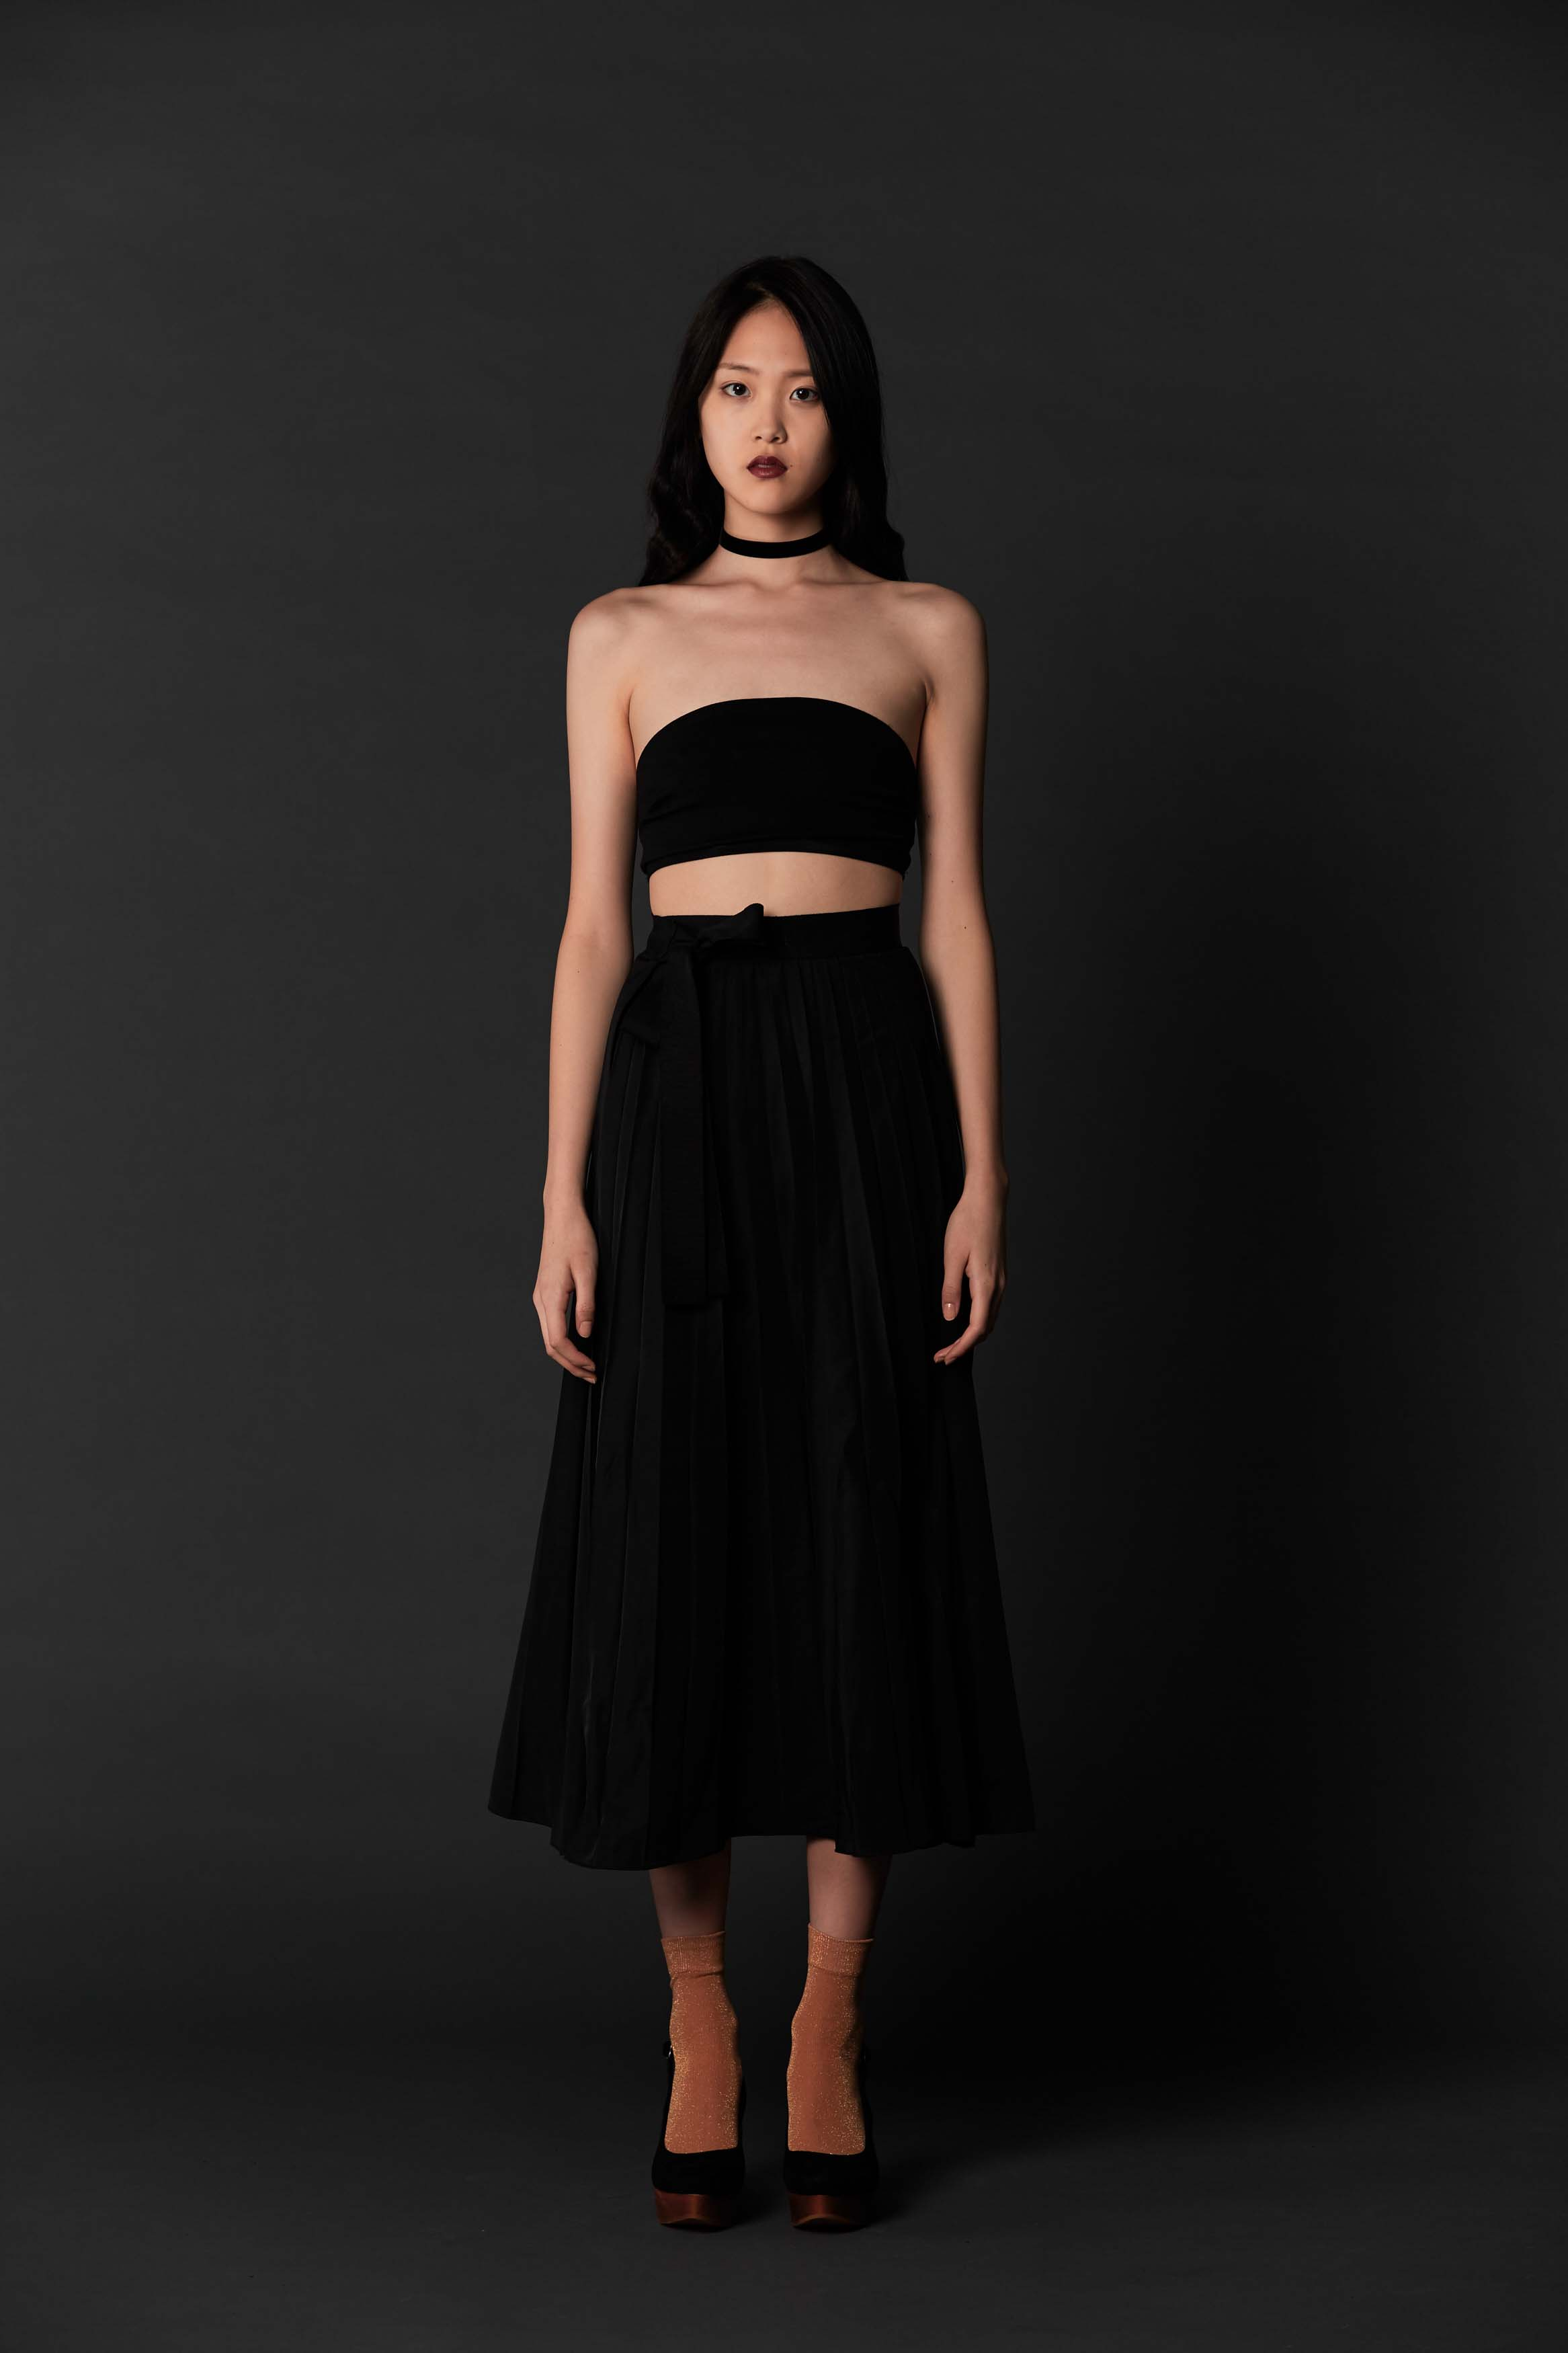 RUBY Vampire Bandeau, Vampire Pleat Skirt & Halo Heel